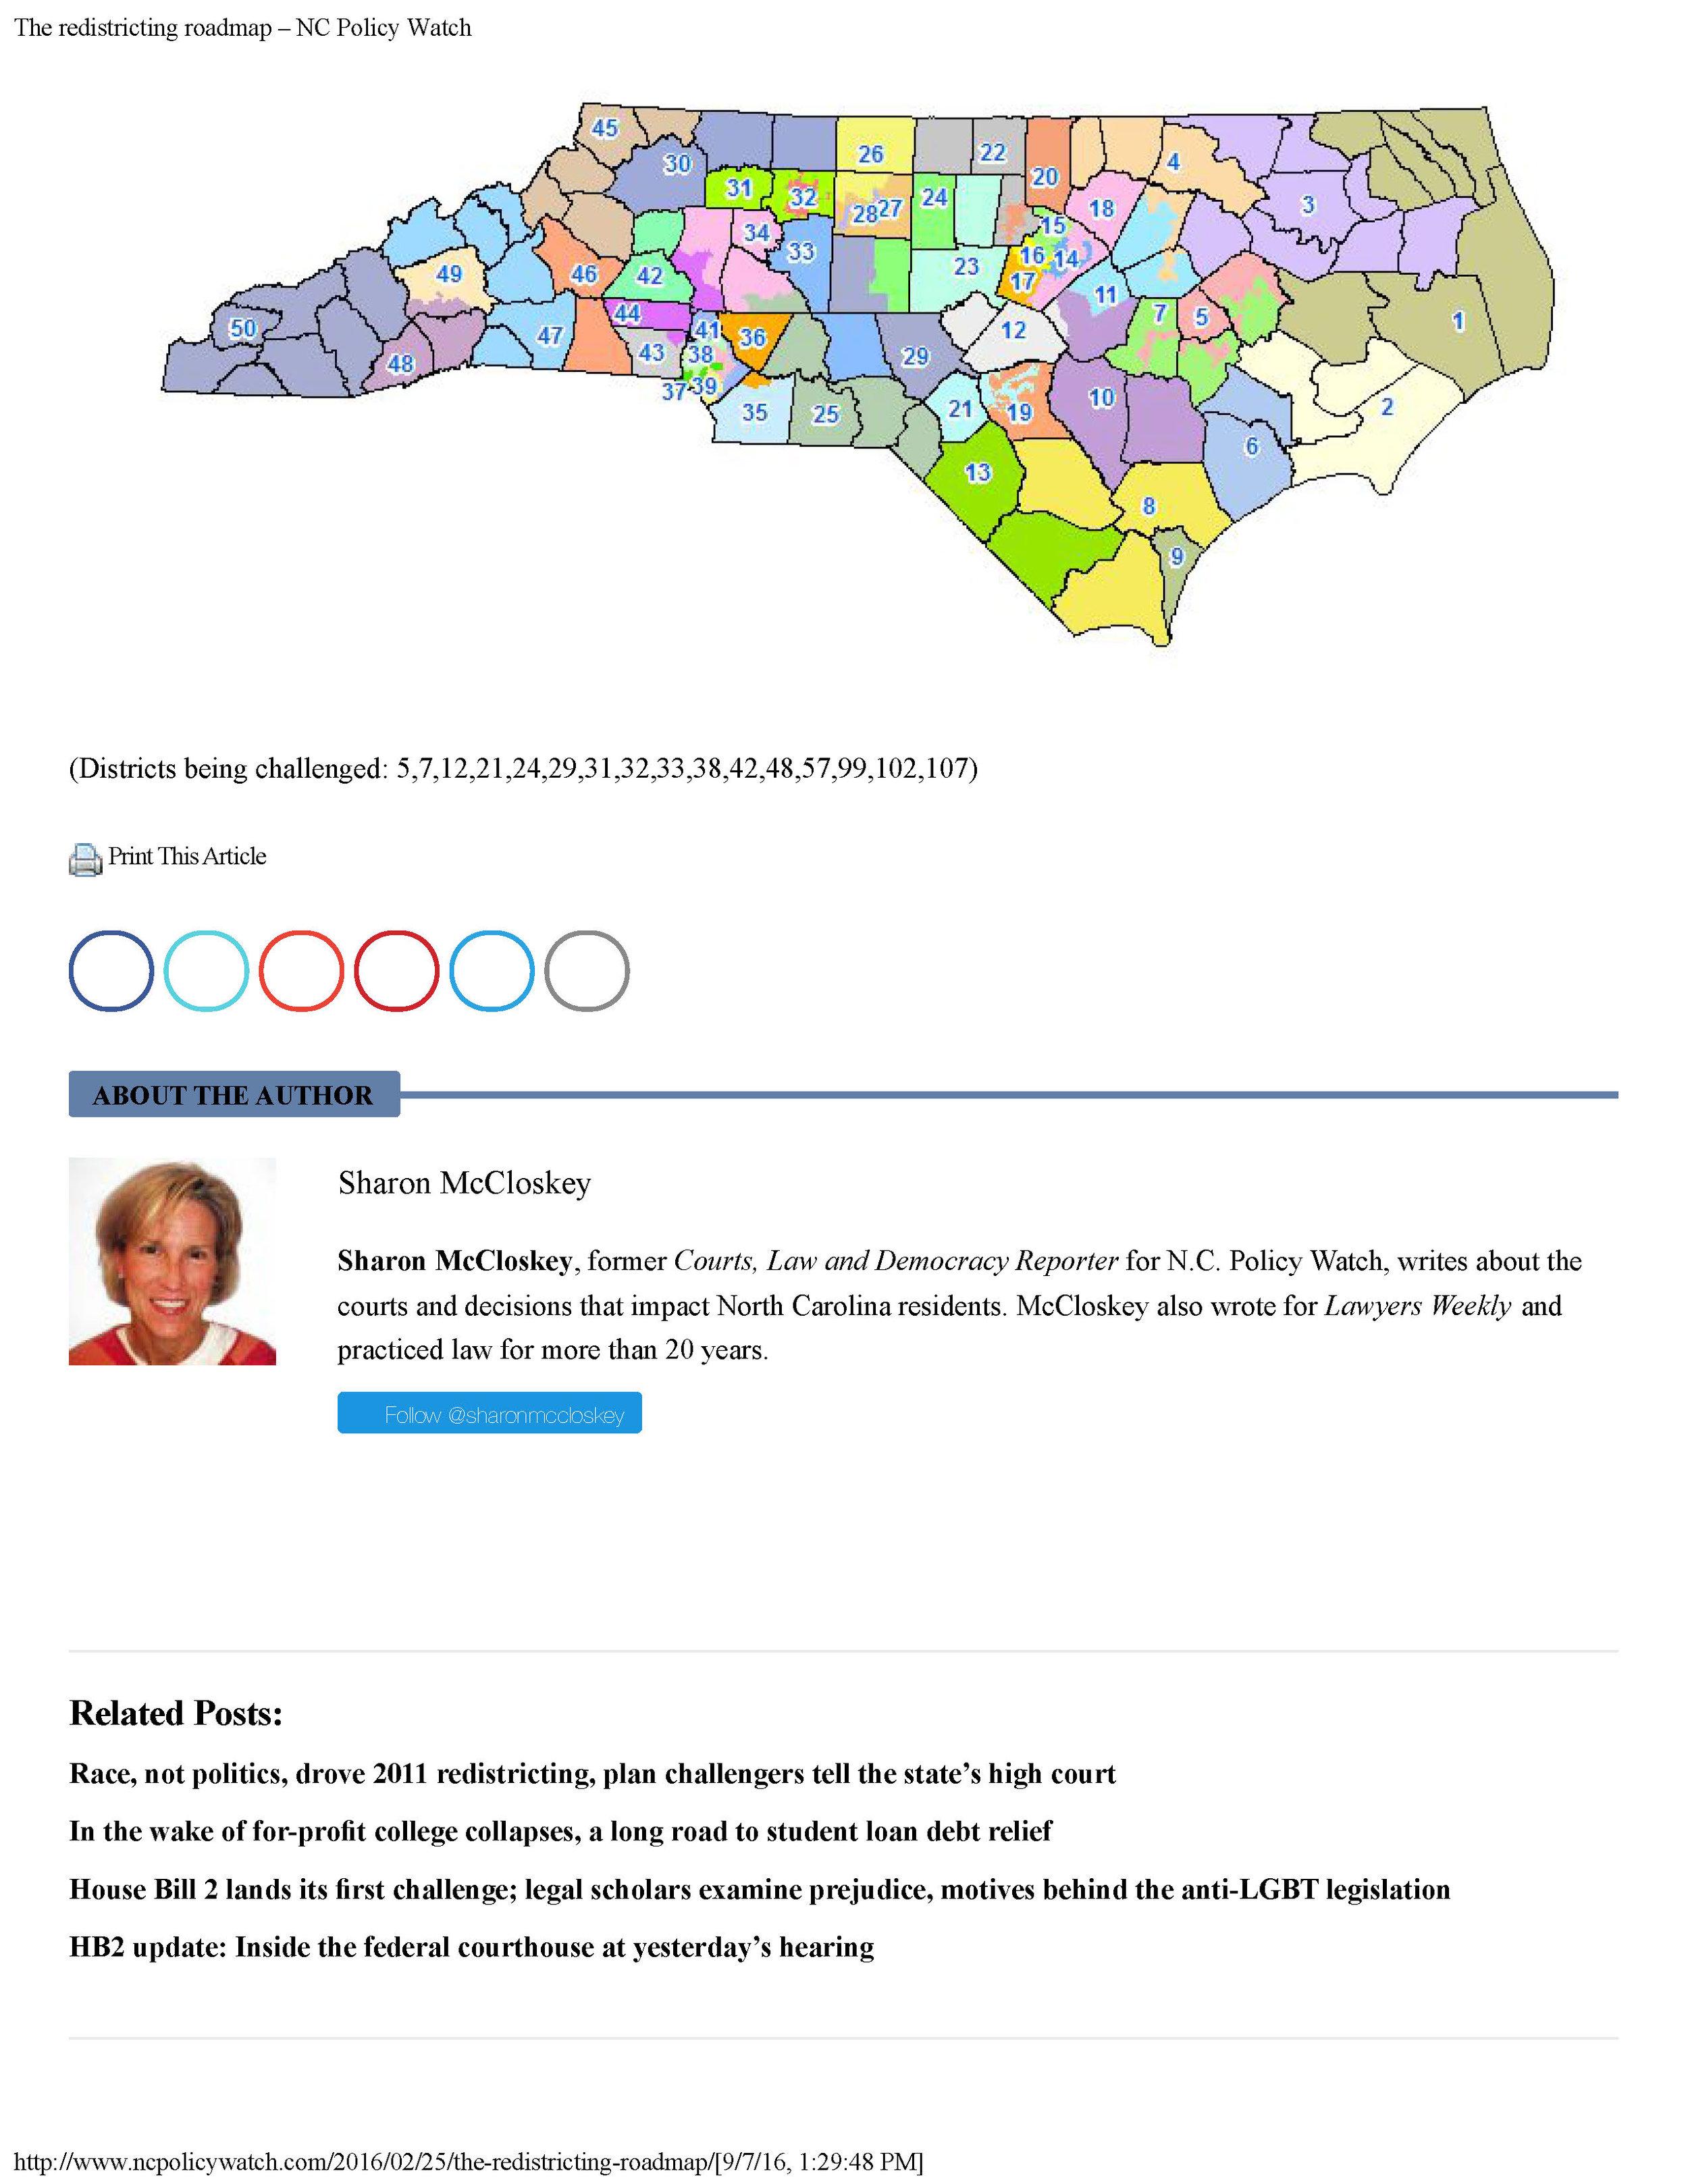 Sharon McCloskey - The redistricting roadmap – NC Policy Watch_Page_5.jpg